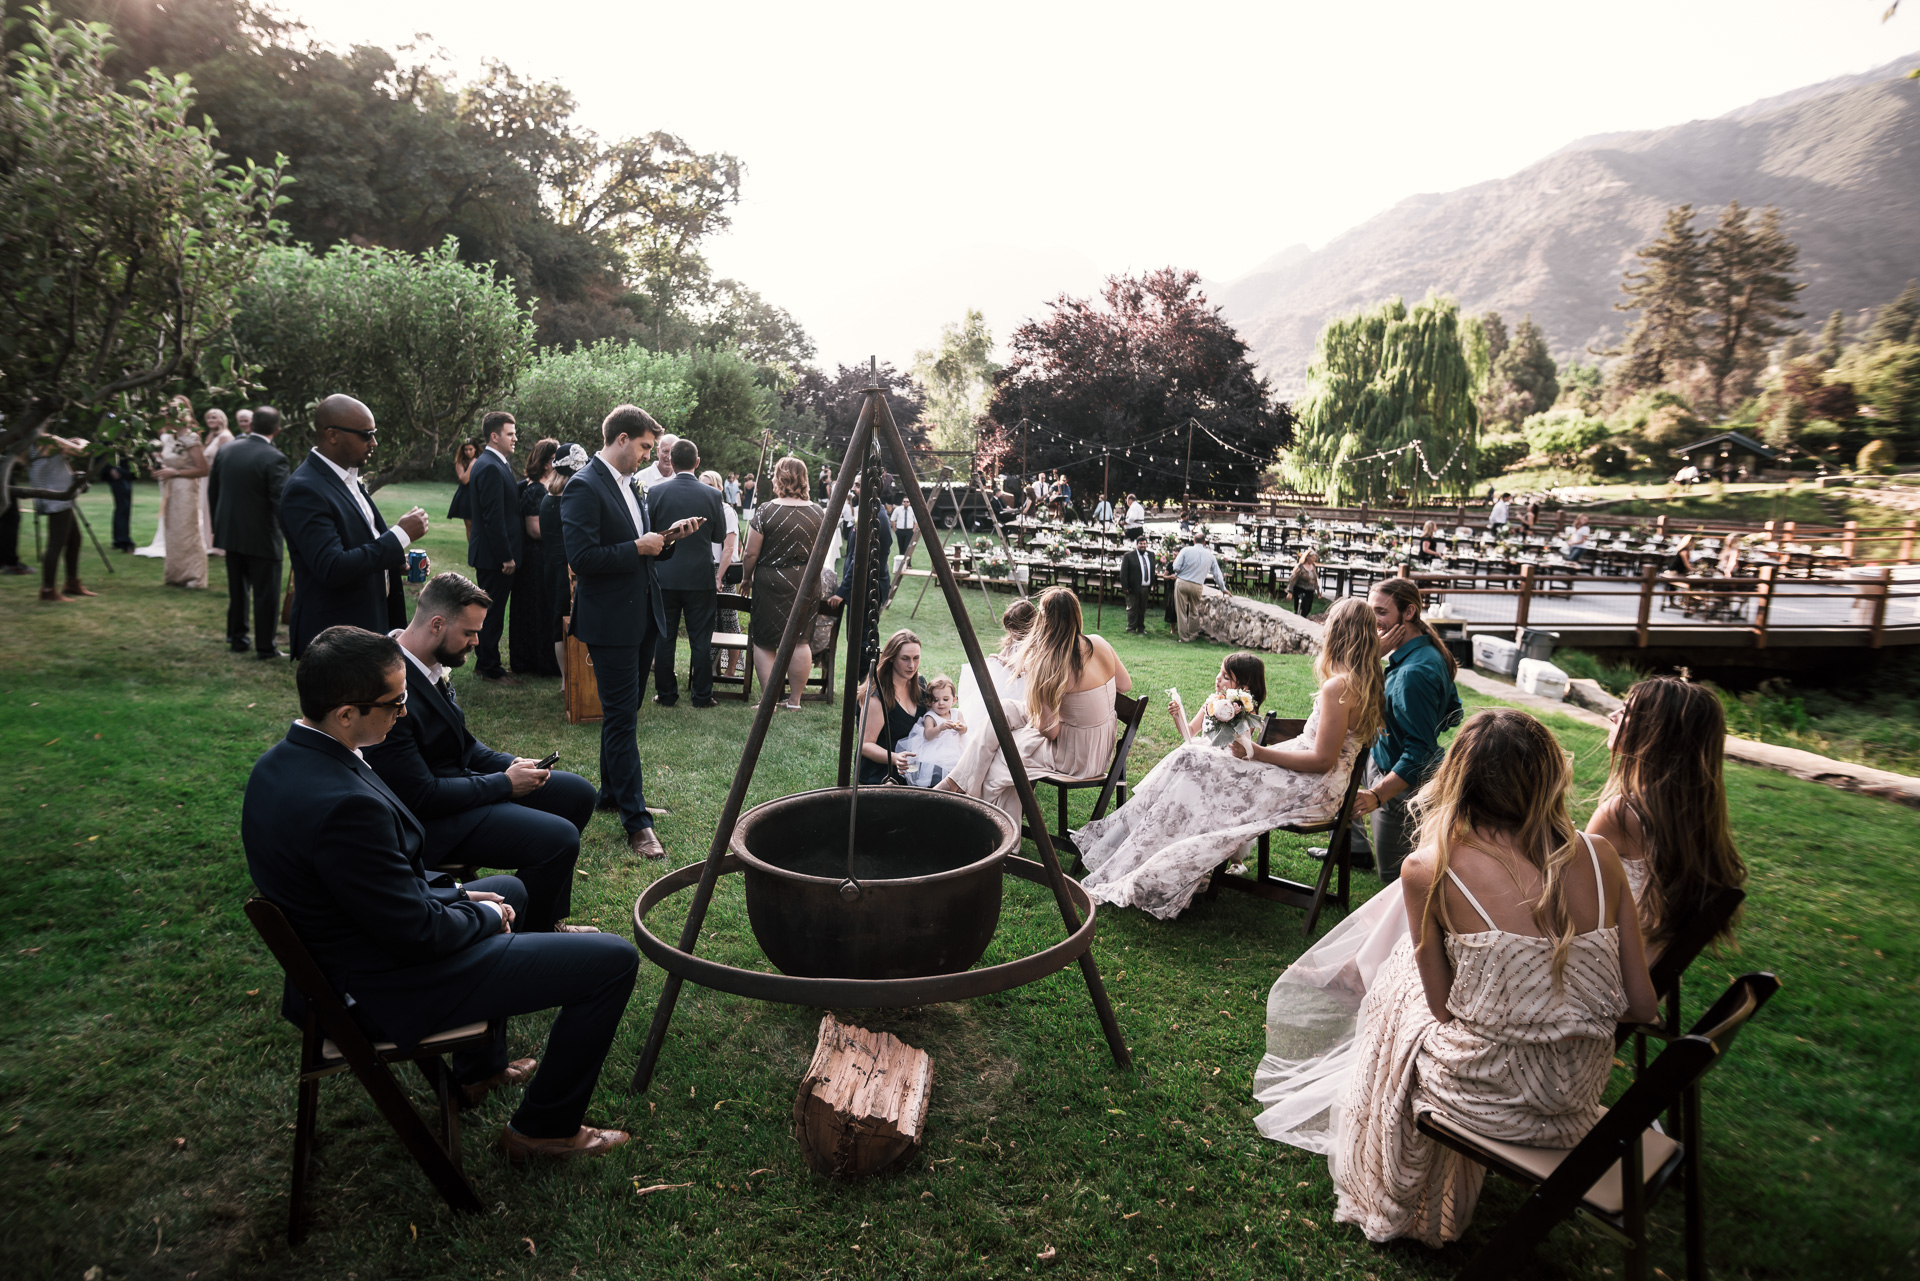 guests enjoy the rustic tranquility at the secret garden located at the Historic Parish ranch in Oak Glen California